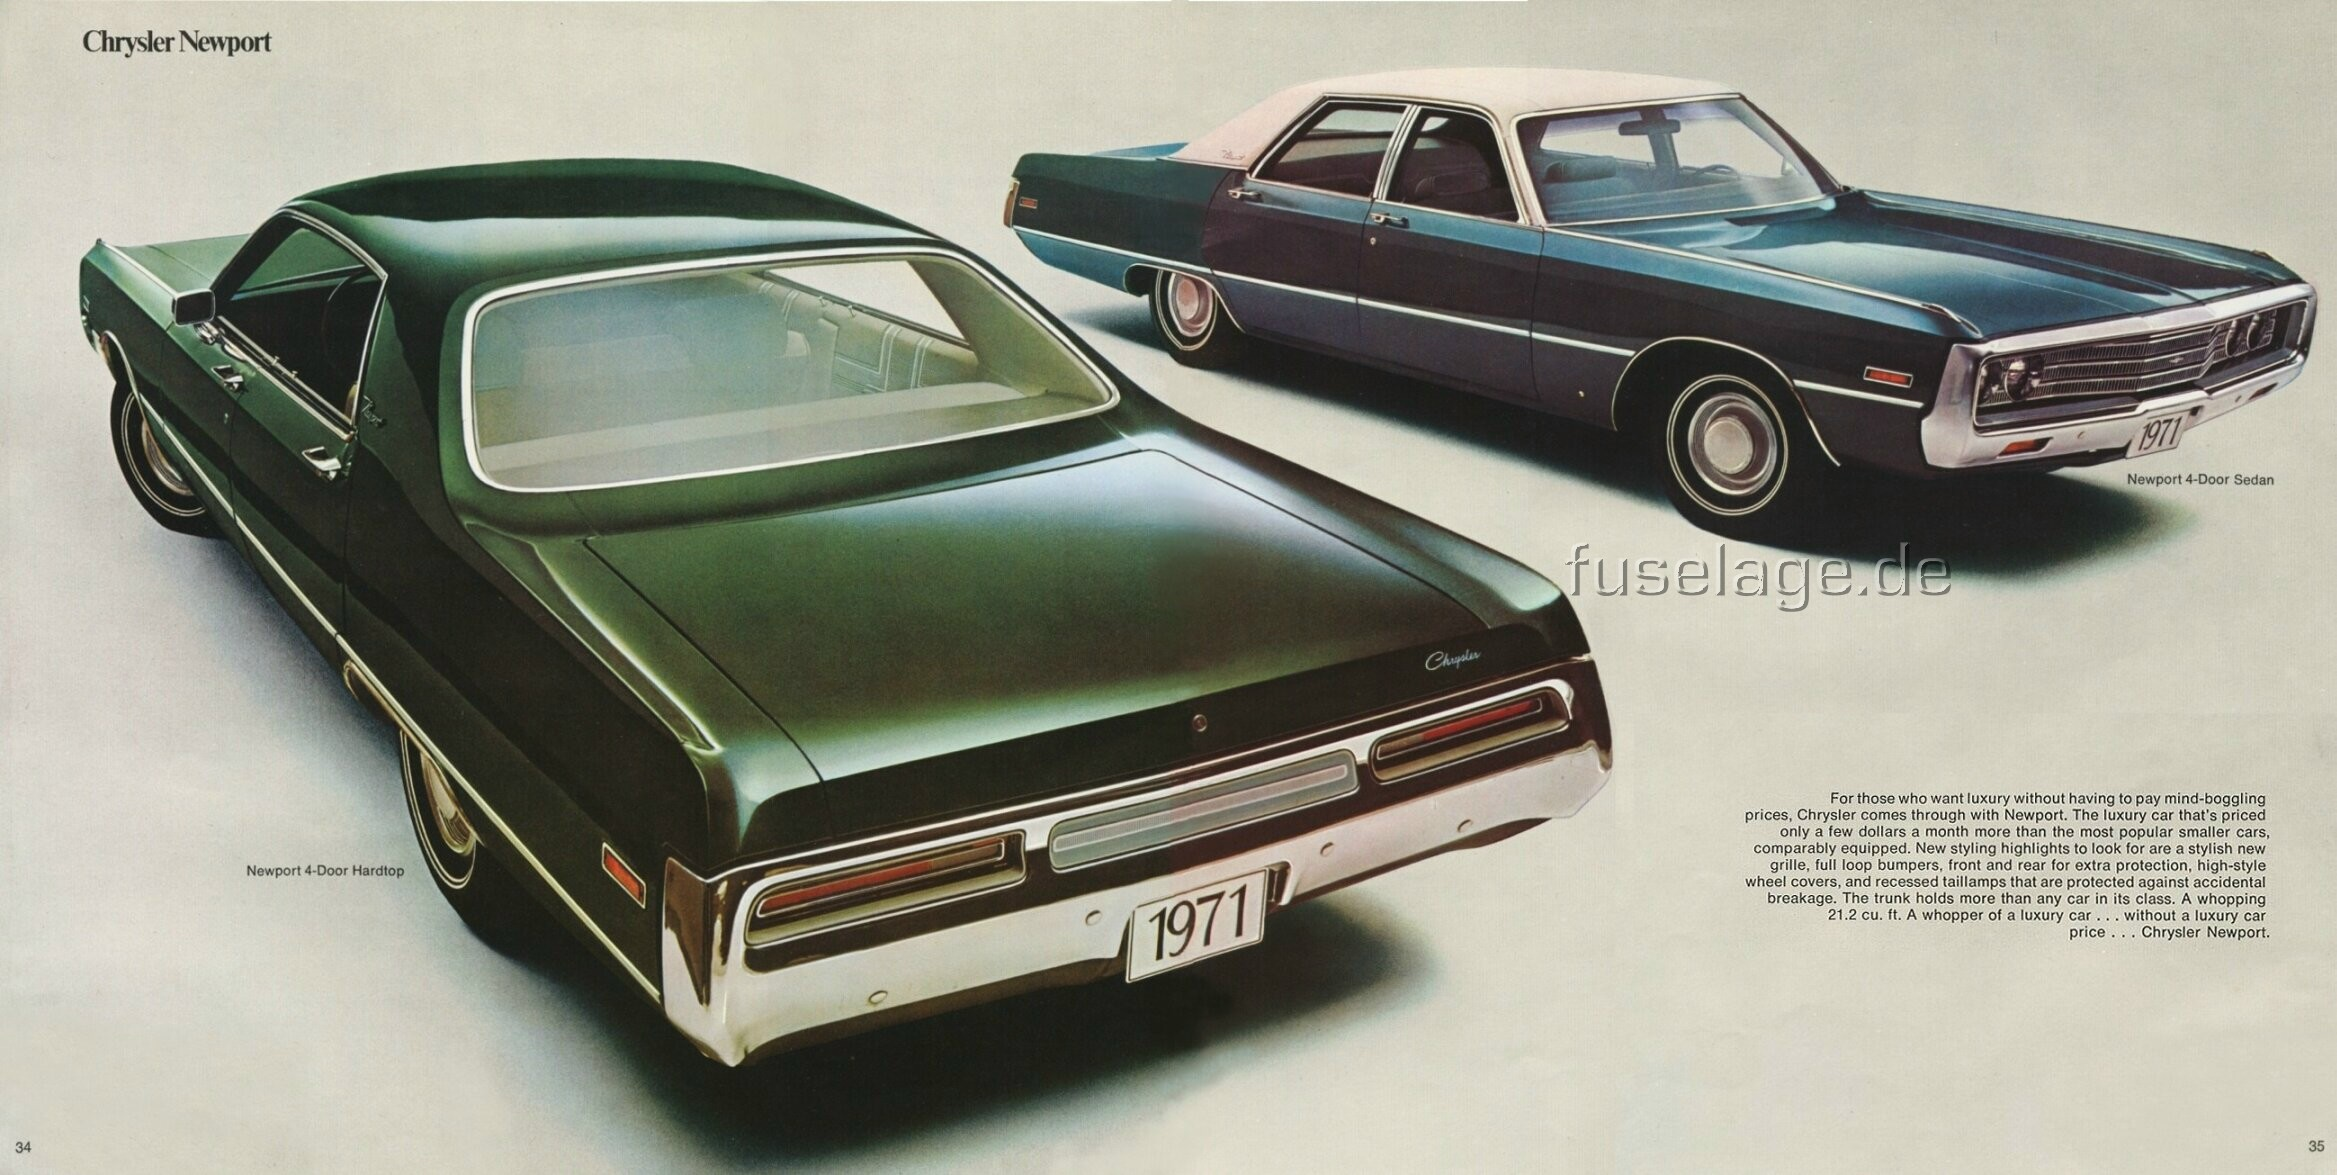 1971 Chrysler Newport #17